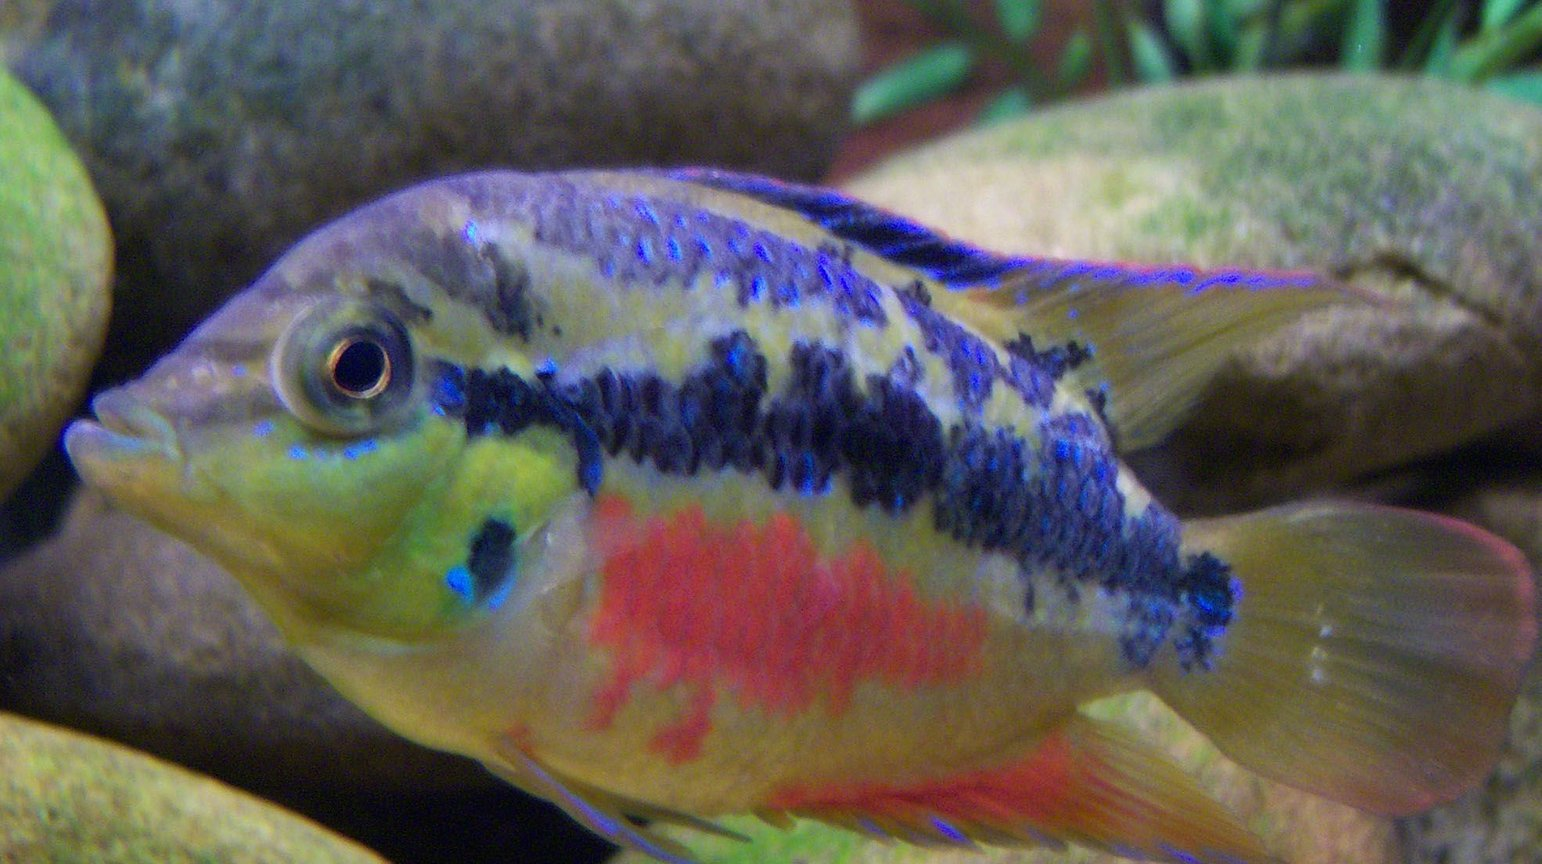 freshwater fish - nandopsis salvini - salvini cichlid stocking in 150 gallons tank - 3 inch Salvini Cichlid